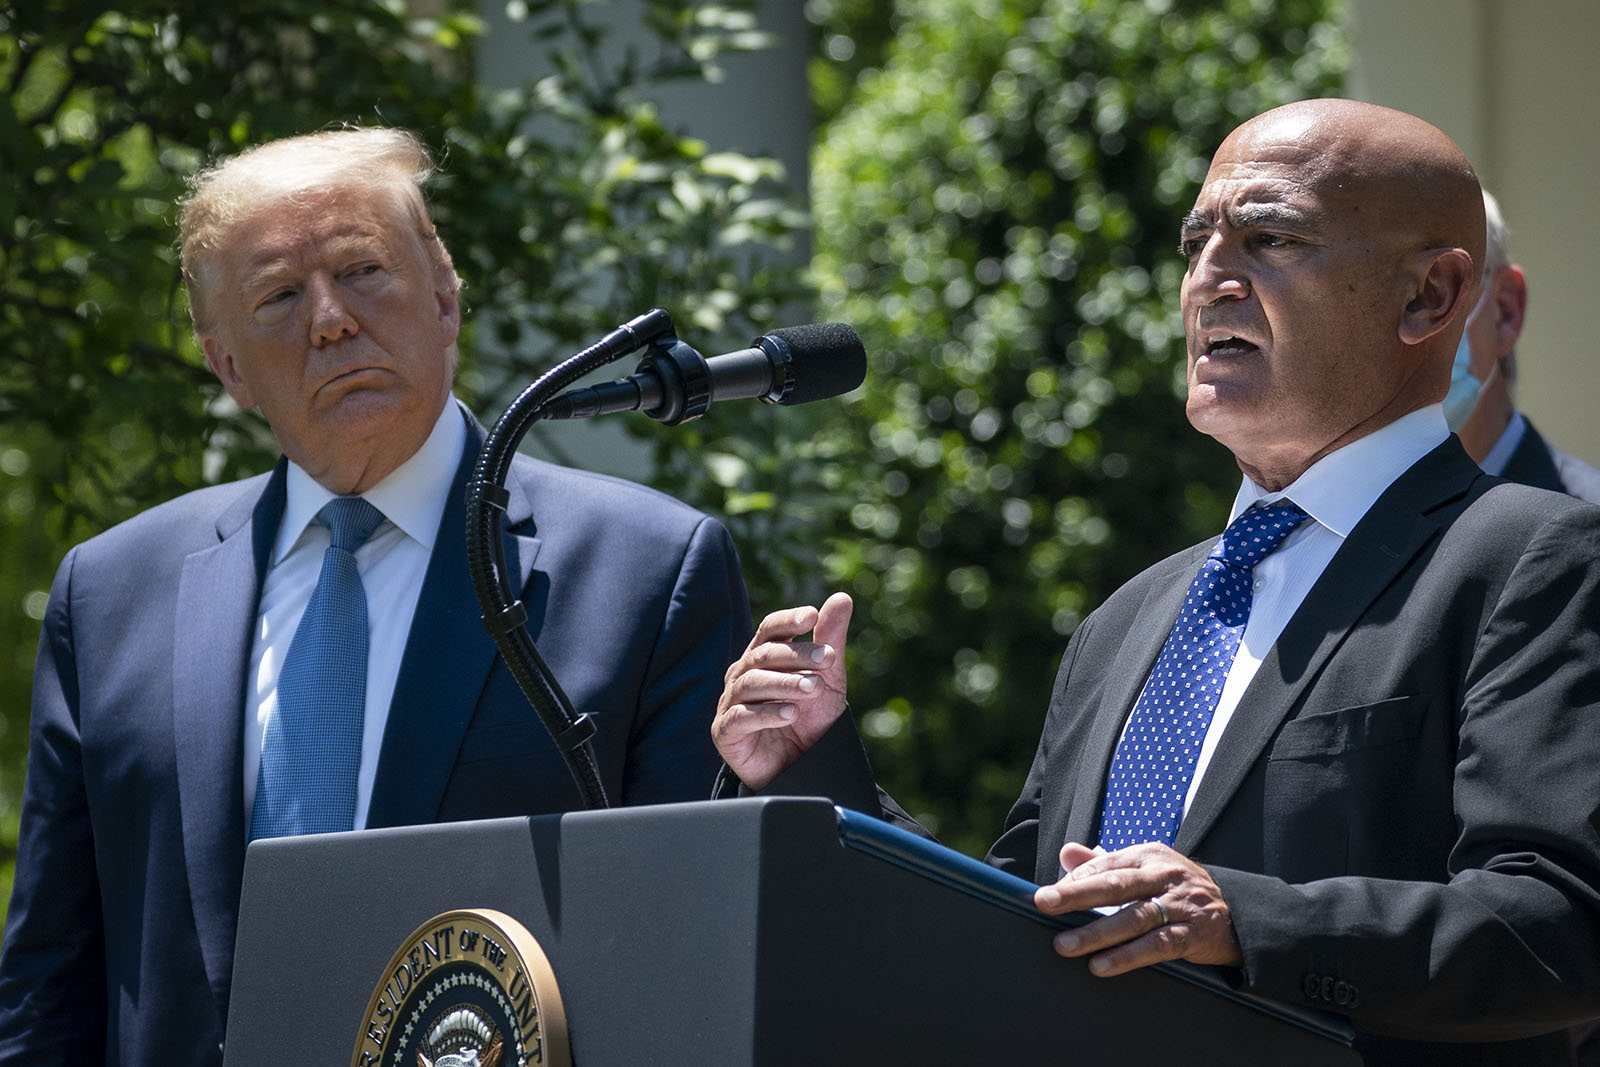 President Donald Trump listens as Moncef Slaoui, the former head of GlaxoSmithKlines vaccines division, speaks about coronavirus vaccine development in the Rose Garden of the White House on May 15, in Washington.